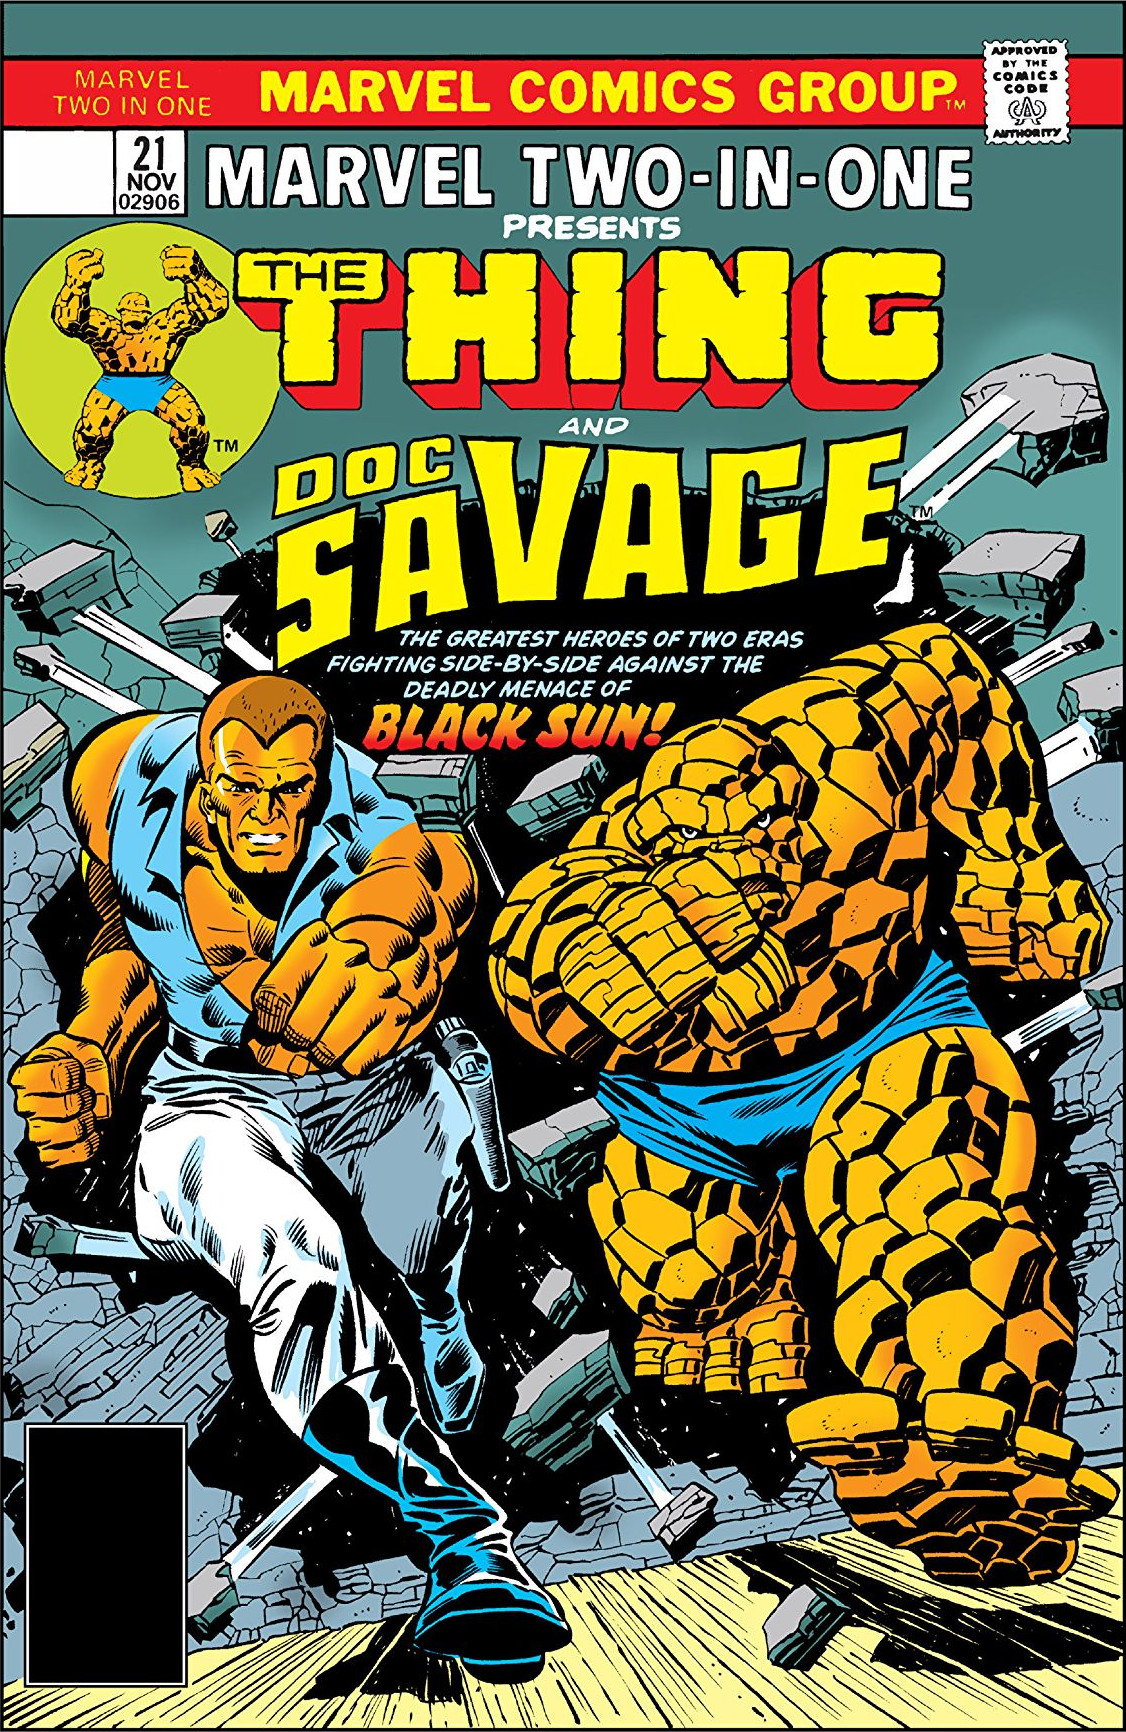 Marvel Two-In-One Vol 1 21